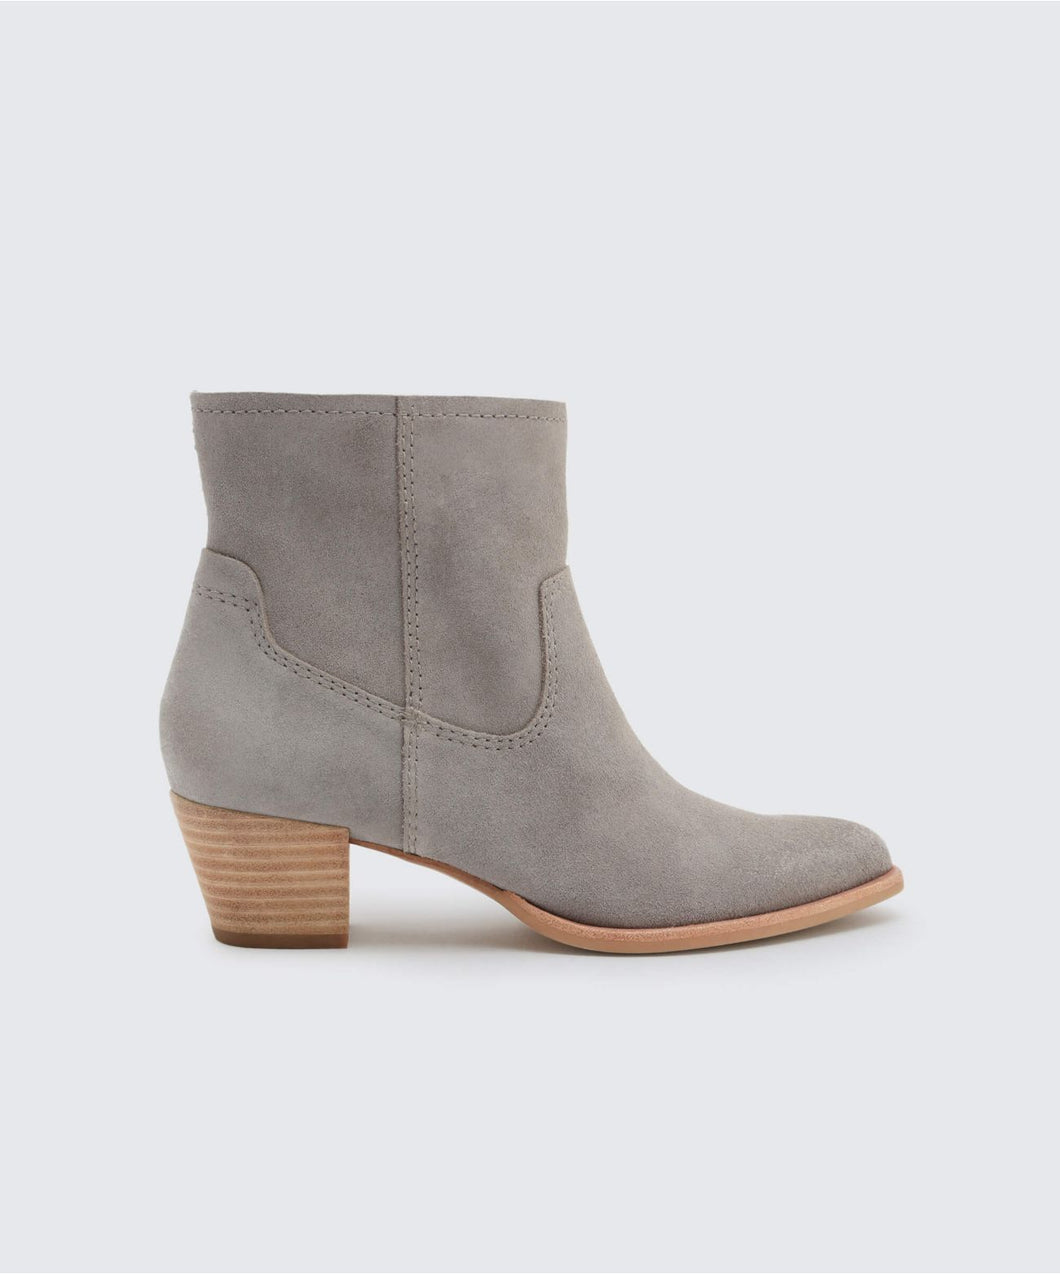 KODI BOOTIES IN SMOKE -   Dolce Vita